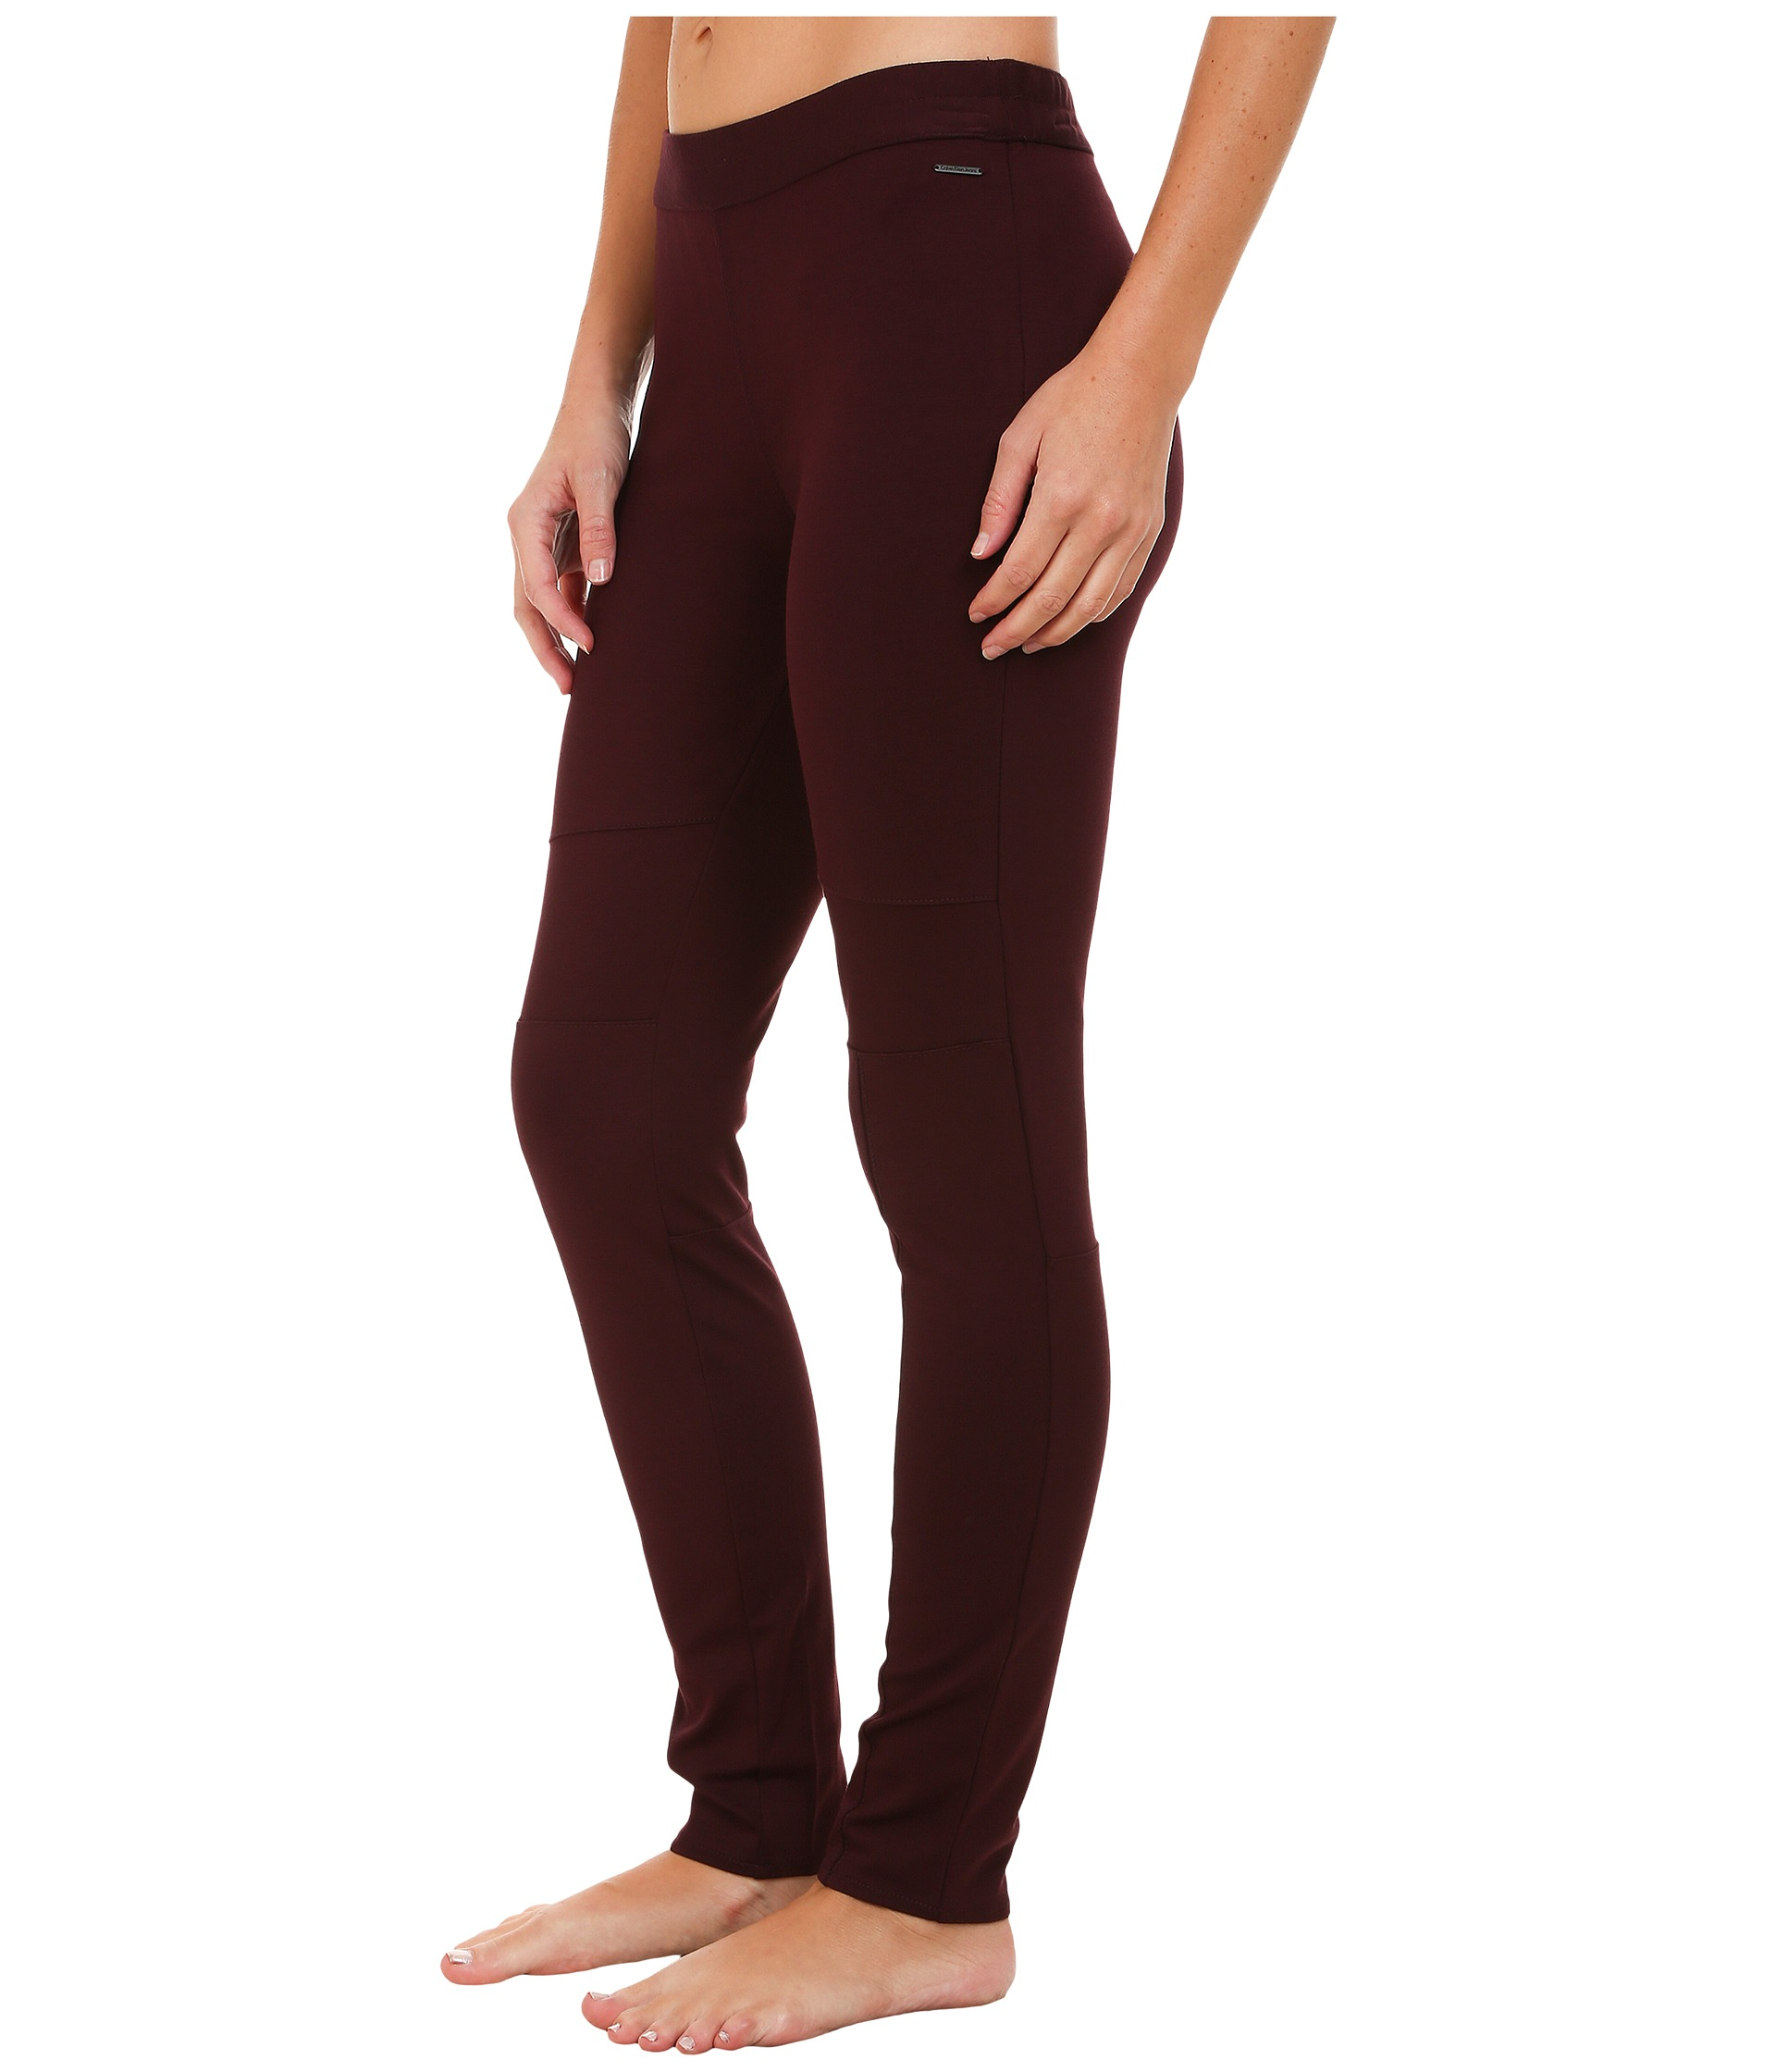 calvin klein jeans pull on ponte leggings cranberry free shipping both ways. Black Bedroom Furniture Sets. Home Design Ideas